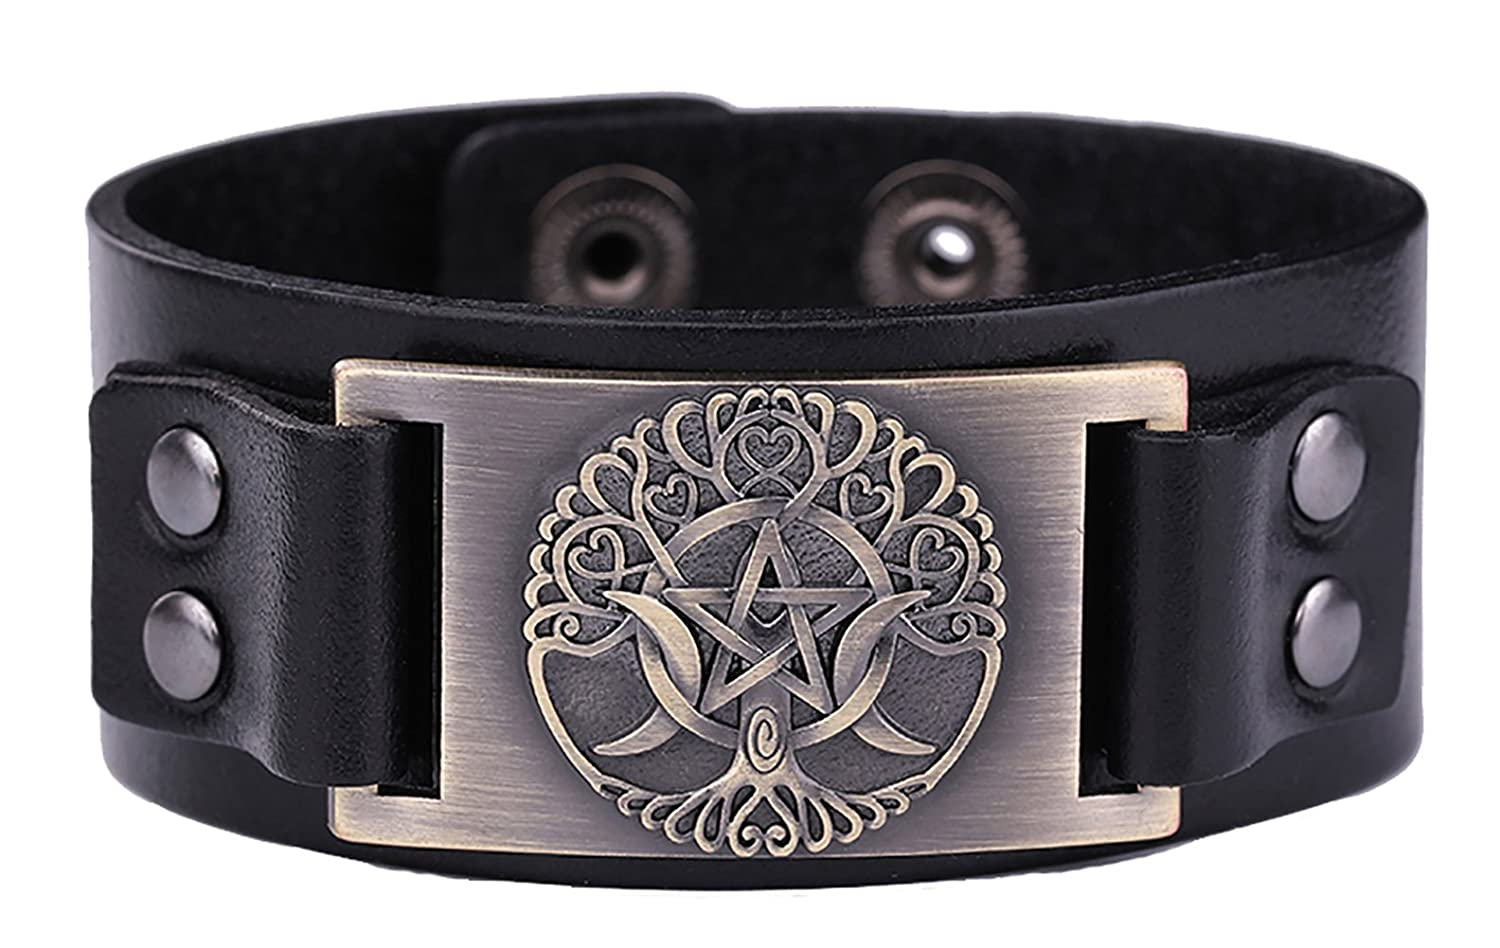 Dawapara Religious Pagan Triple Moon Goddess Pentagram Tree of Life Metal Cuff Leather Bracelet for Men/Women Antique Bronze) YiYou